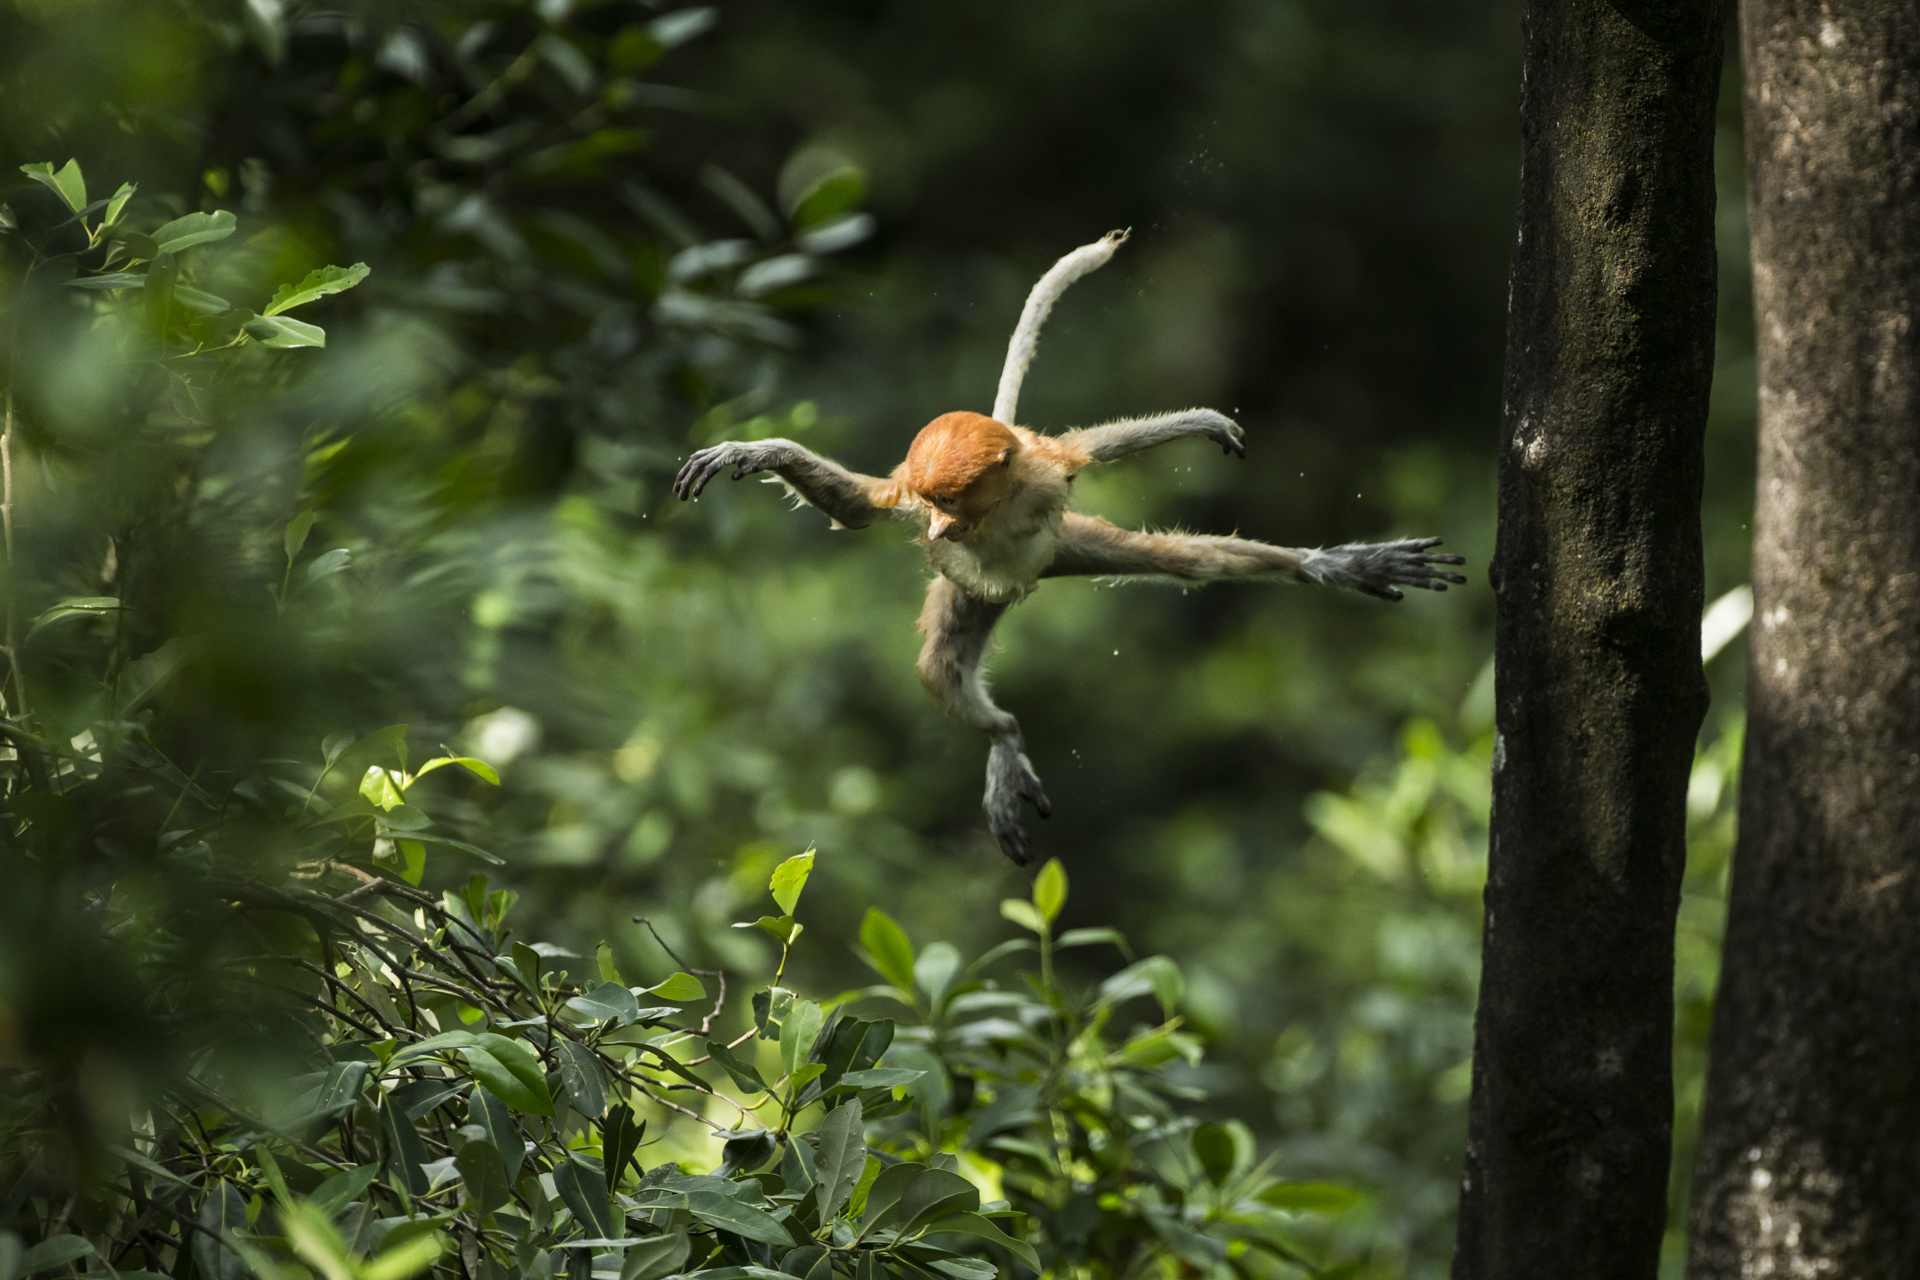 When playing, the youngsters often repeat behaviour, jumping from the same tree for over an hour at times.